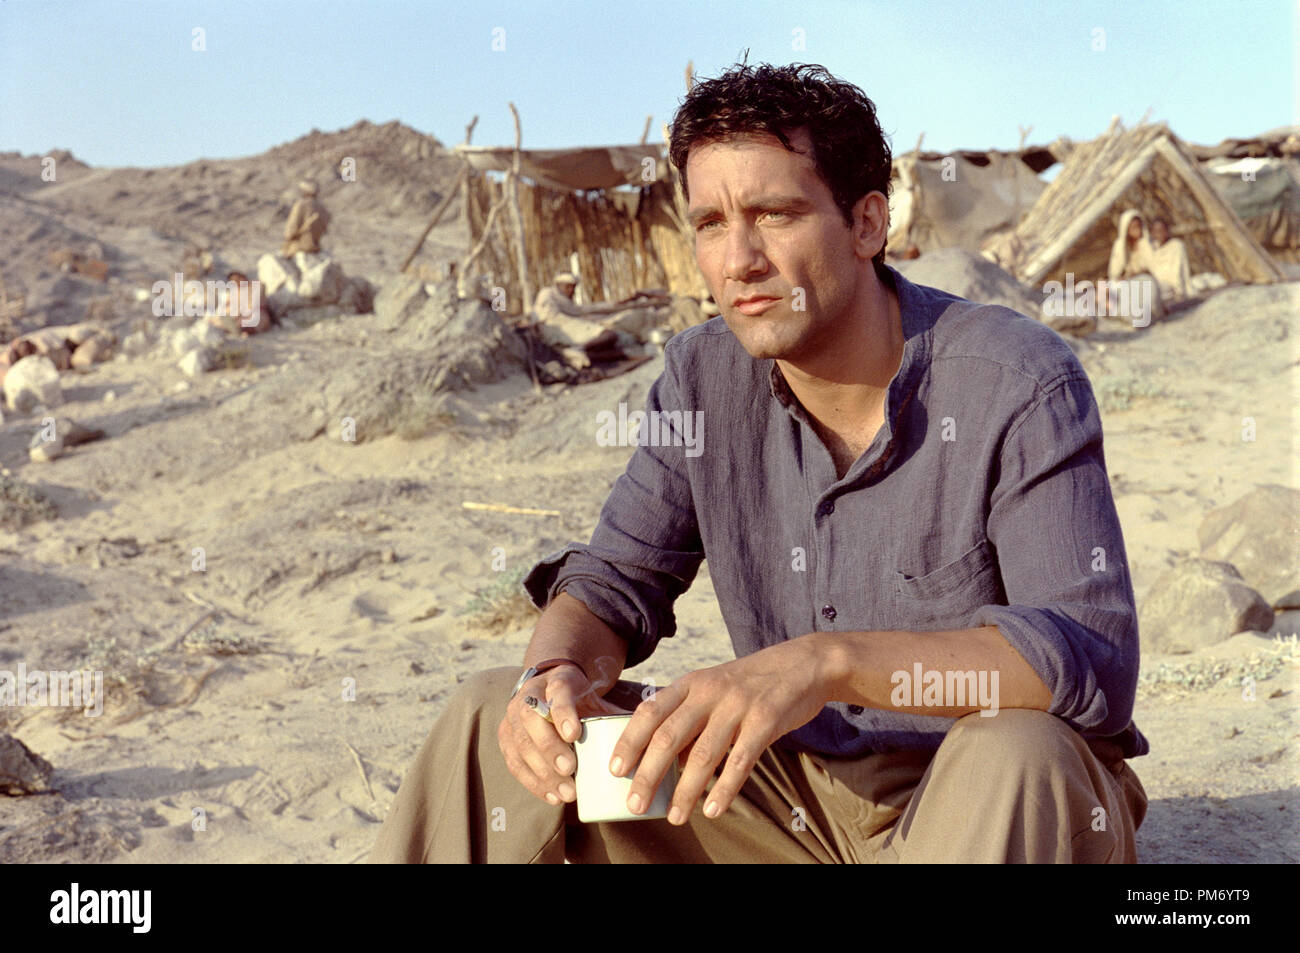 Studio Publicity Still from 'Beyond Borders' Clive Owen  © 2003 Paramount   File Reference # 307531102THA  For Editorial Use Only -  All Rights Reserved - Stock Image